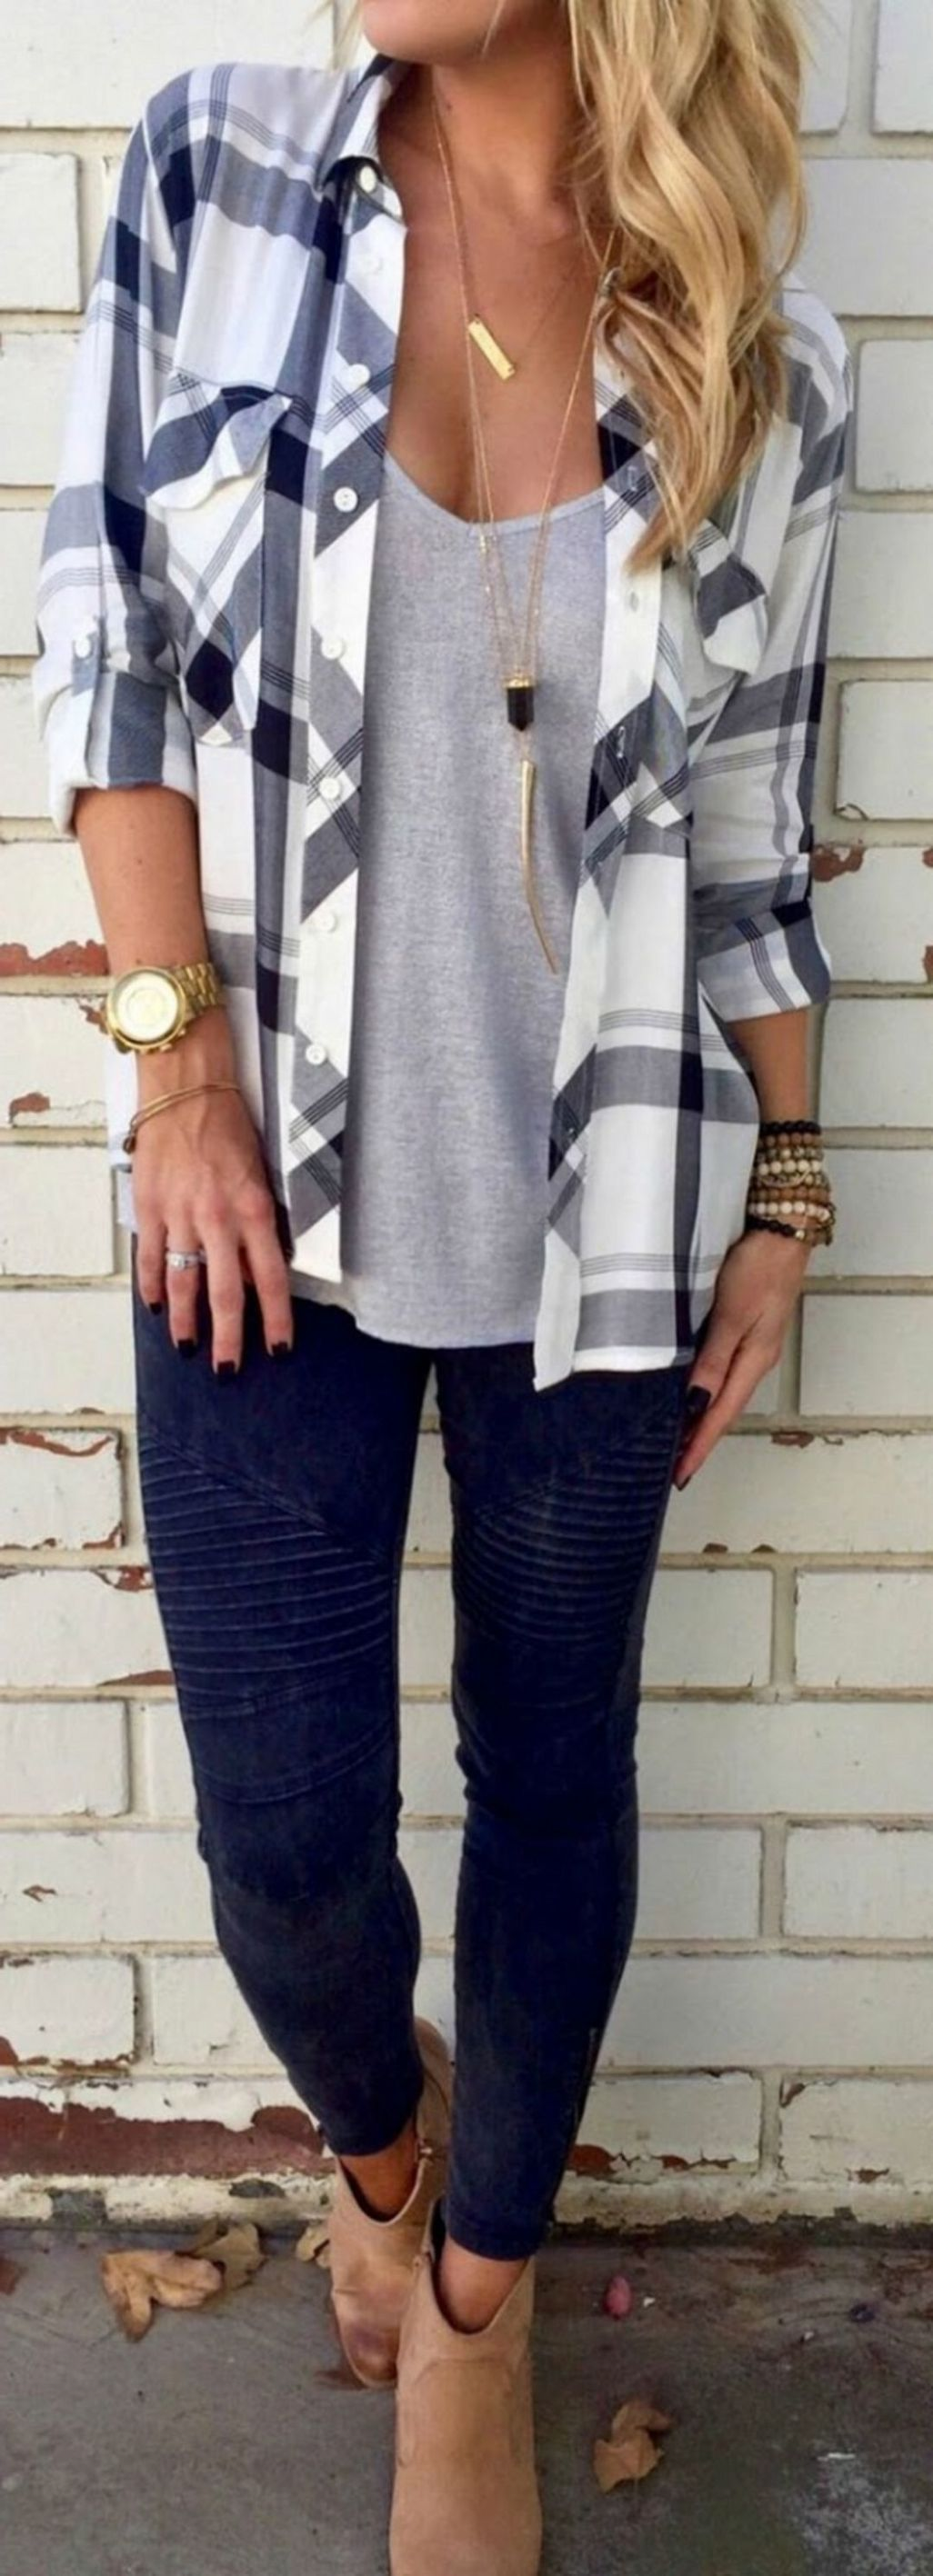 2019 year for women- 50 flannel cute outfit ideas for fall